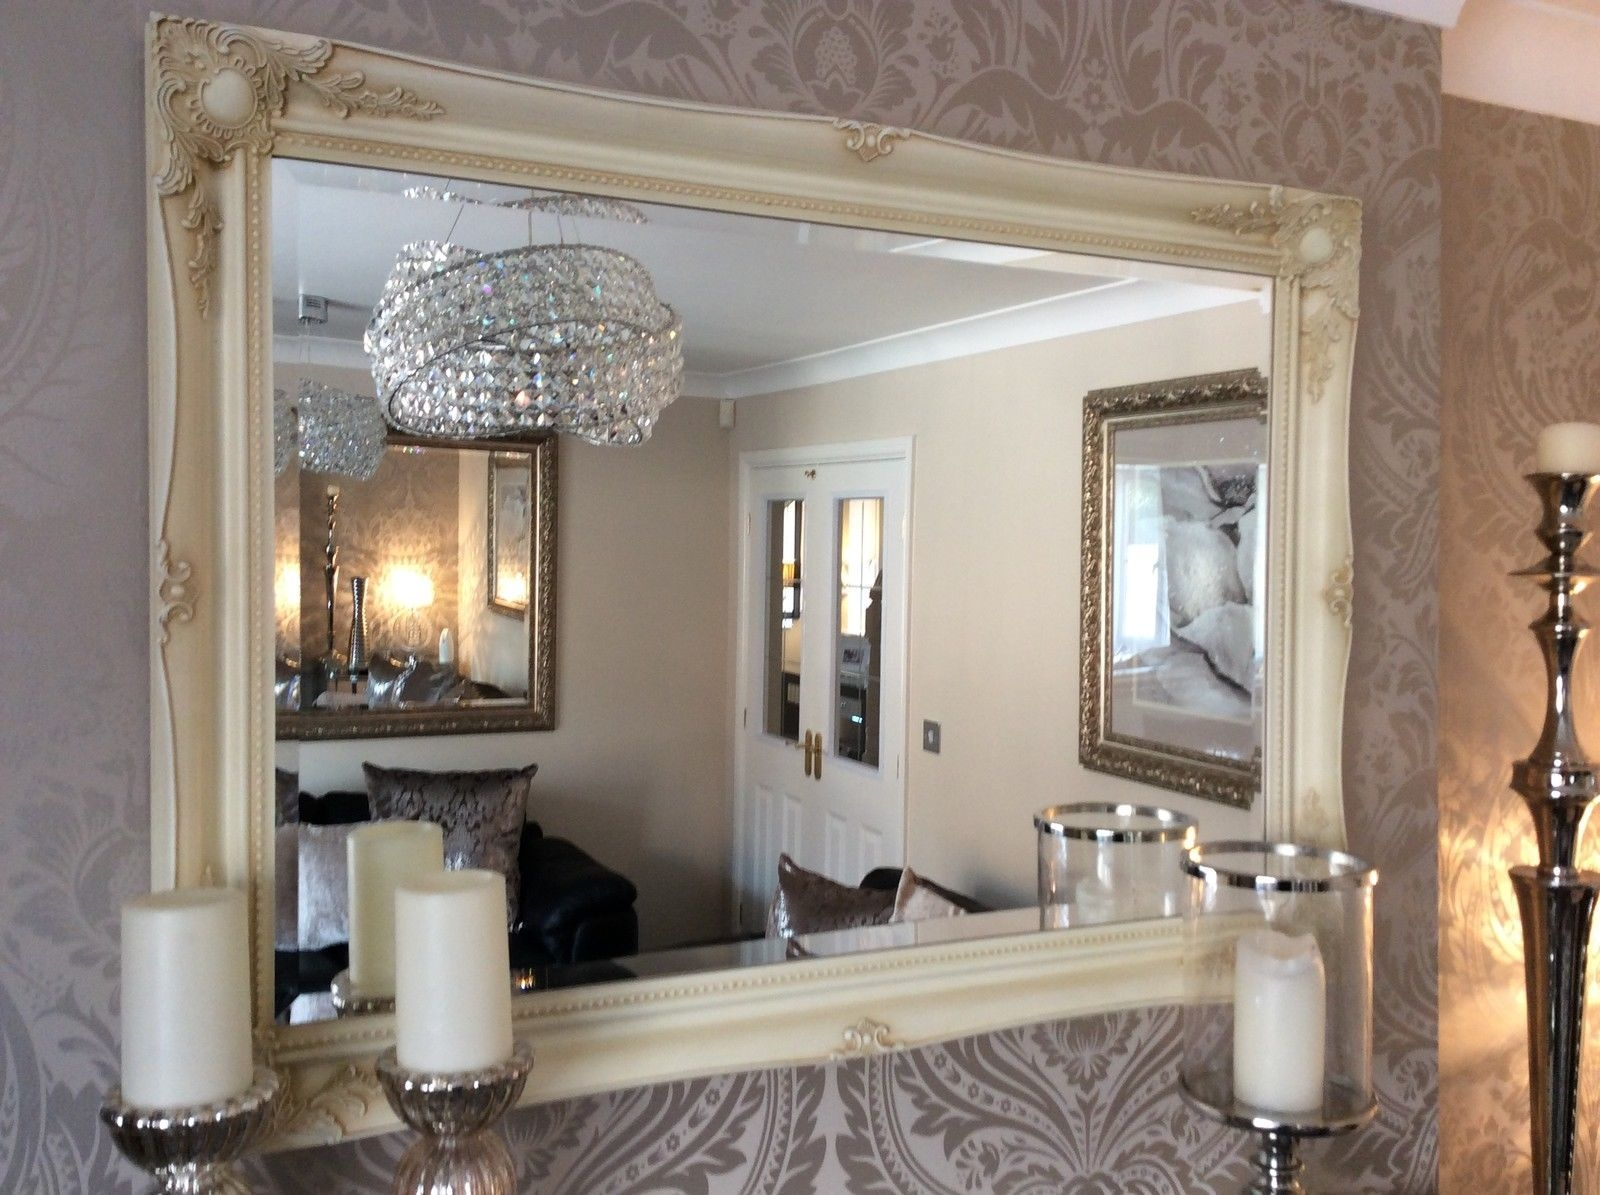 Fabulous Large Cream Decorative Stunning Shab Chic Wall Mirror Throughout Shabby Chic Large Wall Mirrors (View 4 of 15)